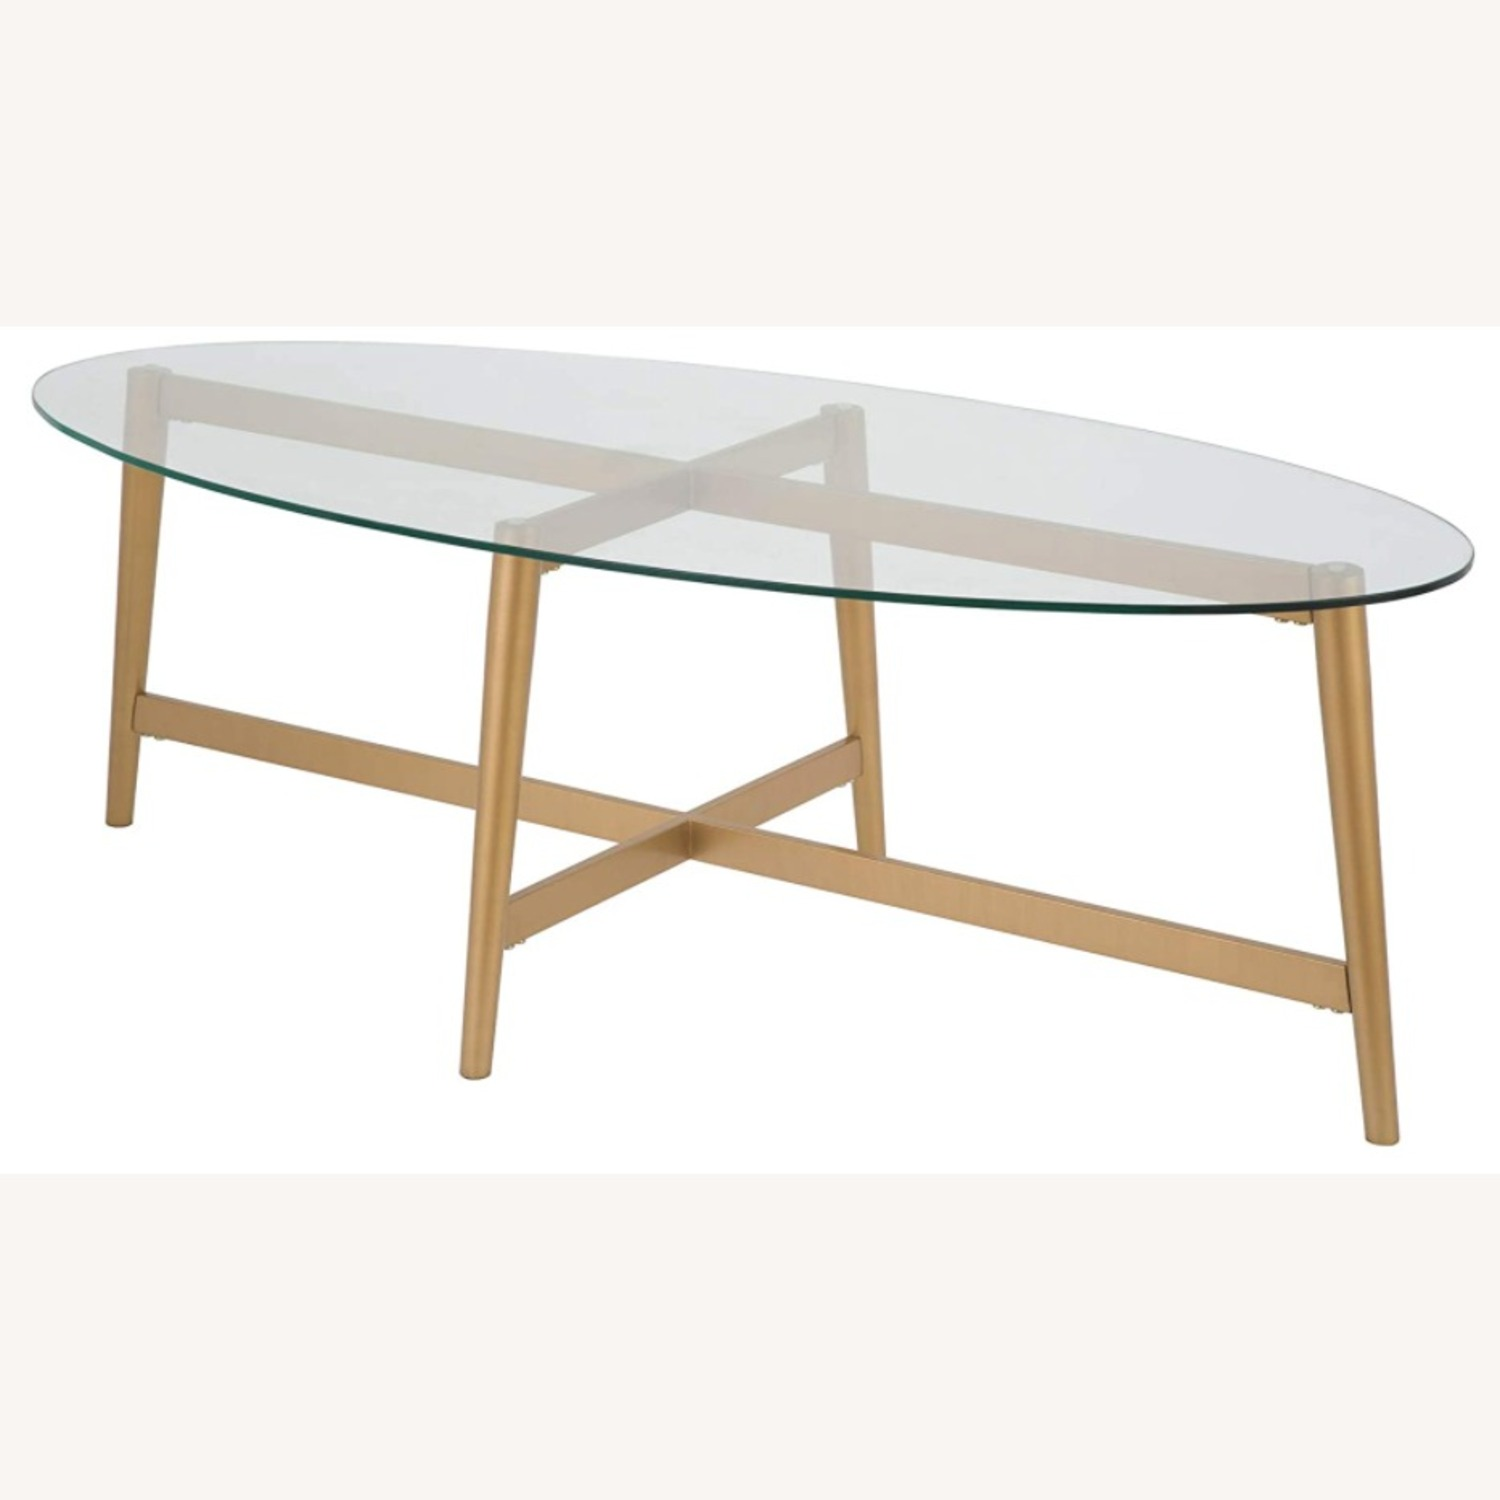 Mid Century Modern Glass Coffee Table w Gold Frame - image-1